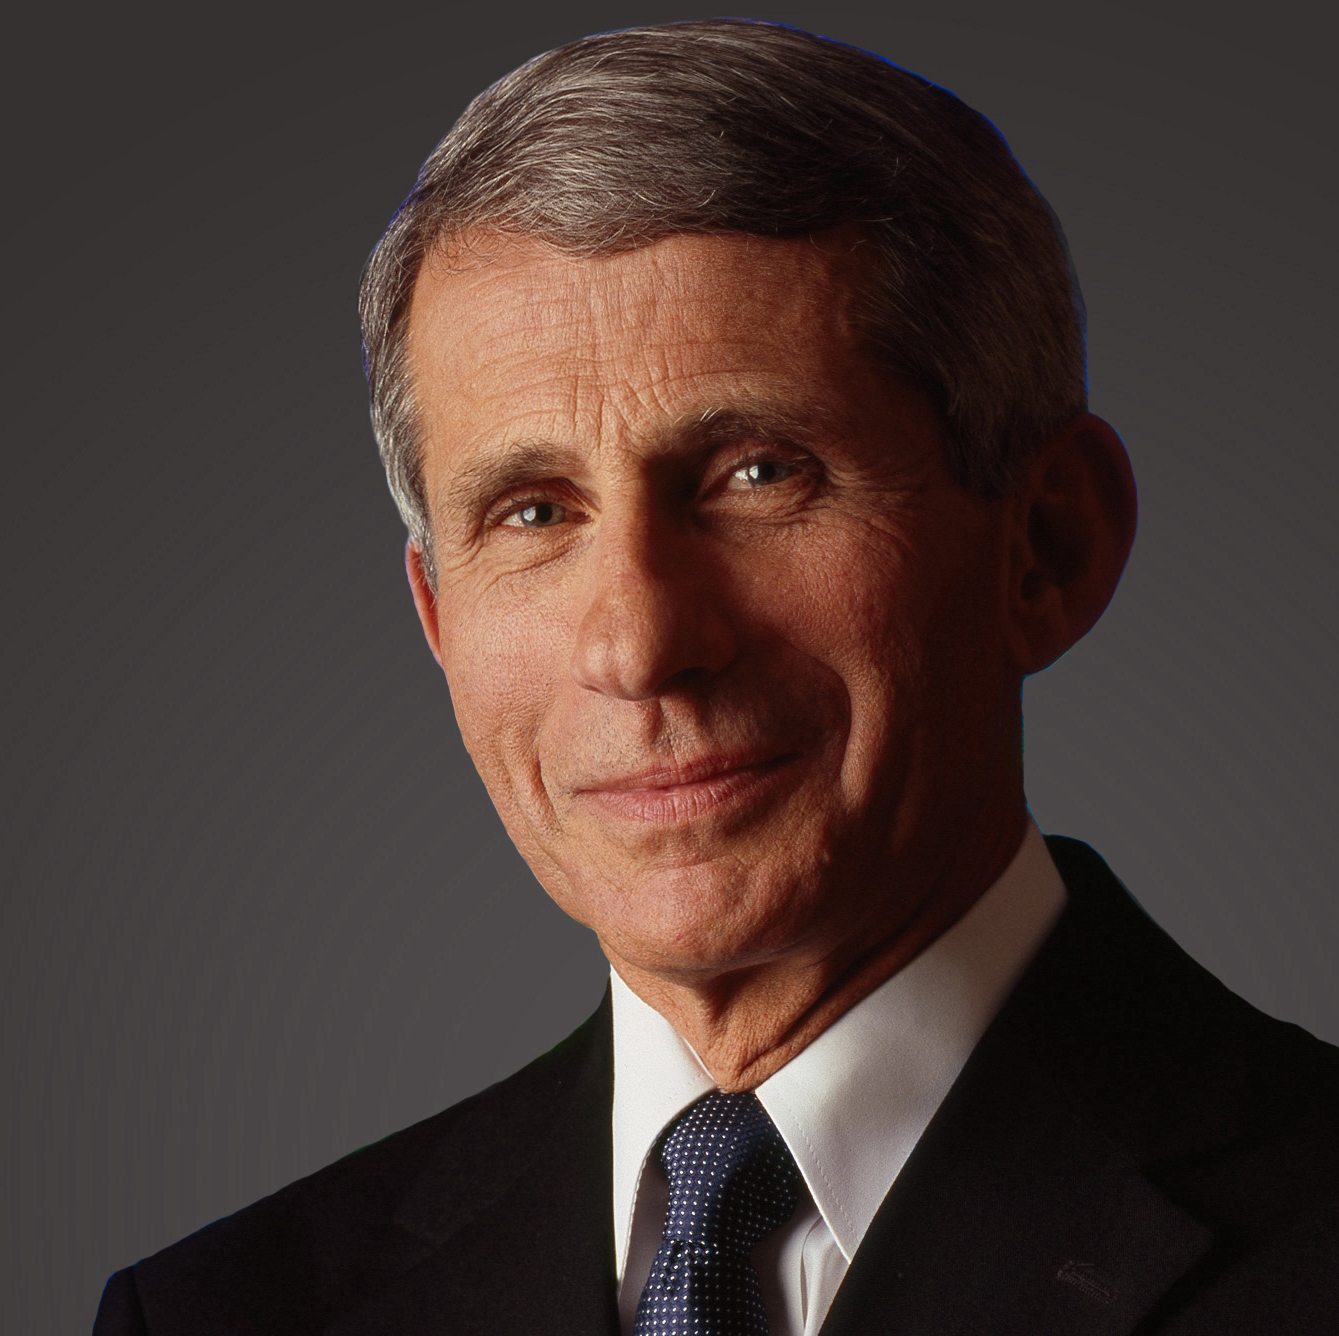 Challenging Corona: Join us for a live event with Dr. Anthony Fauci